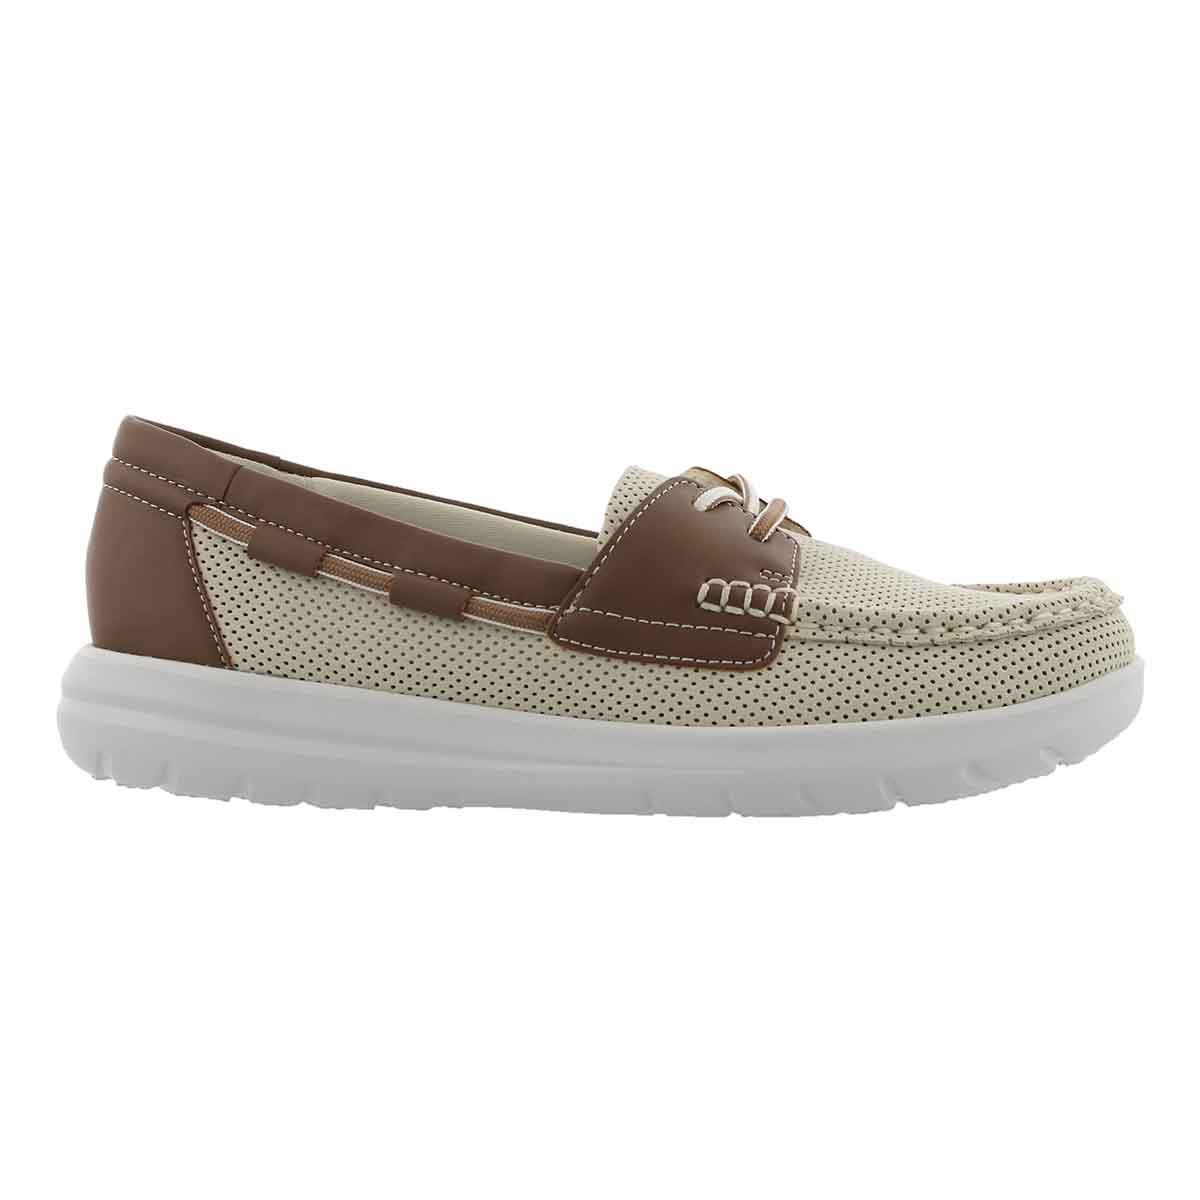 Lds Jocolin Vista off white boat shoe